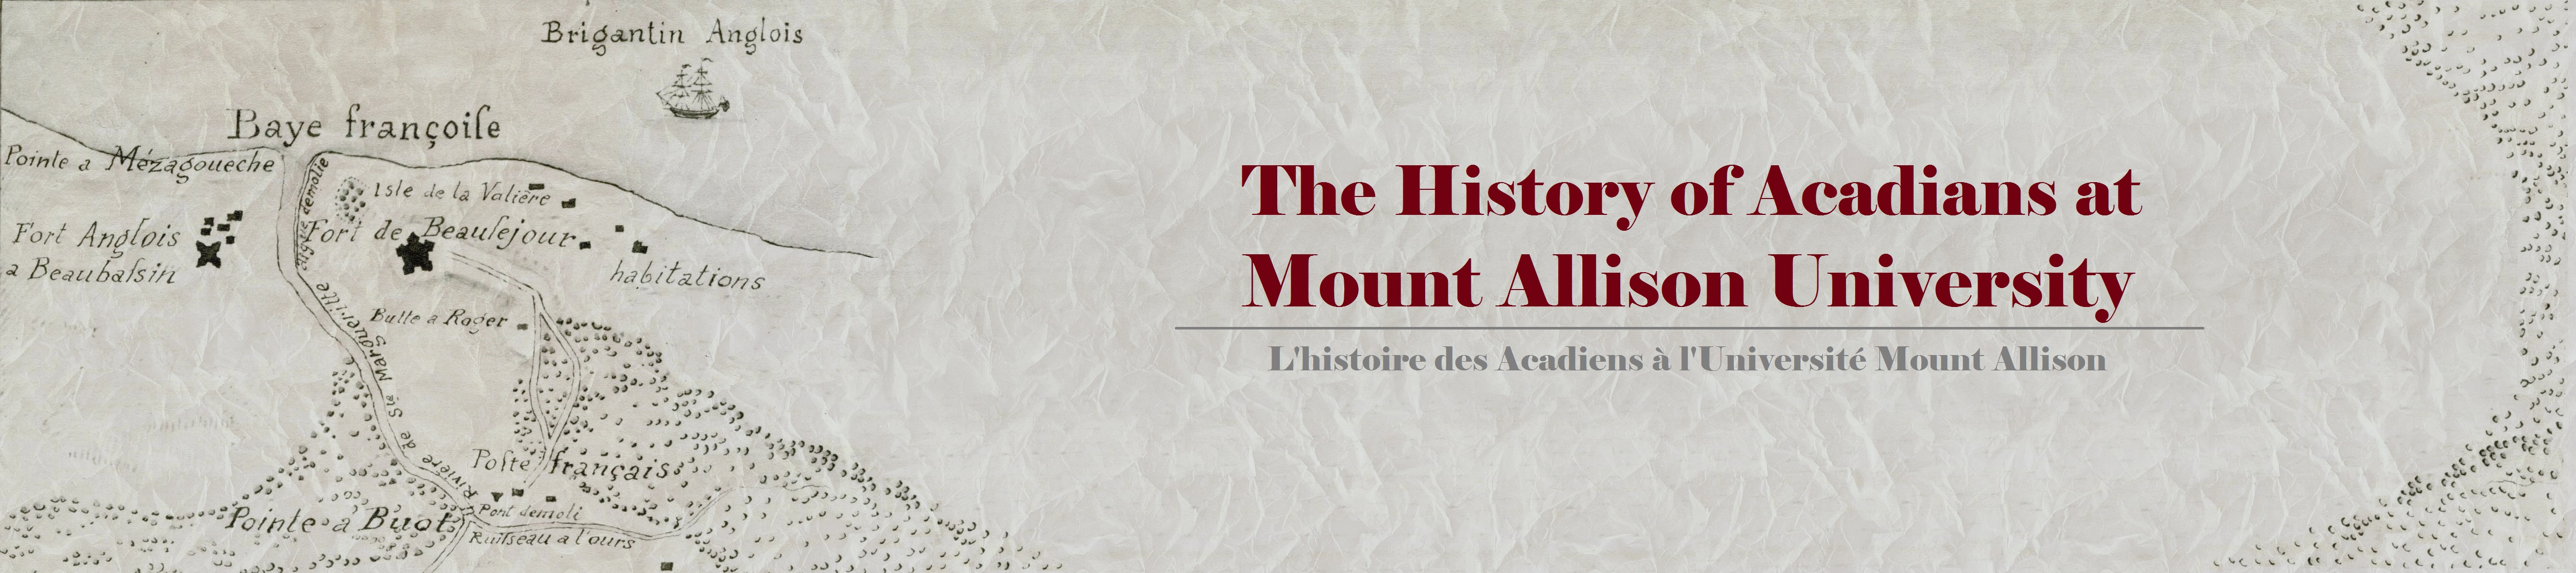 Banner: The History of Acadians at Mount Allison